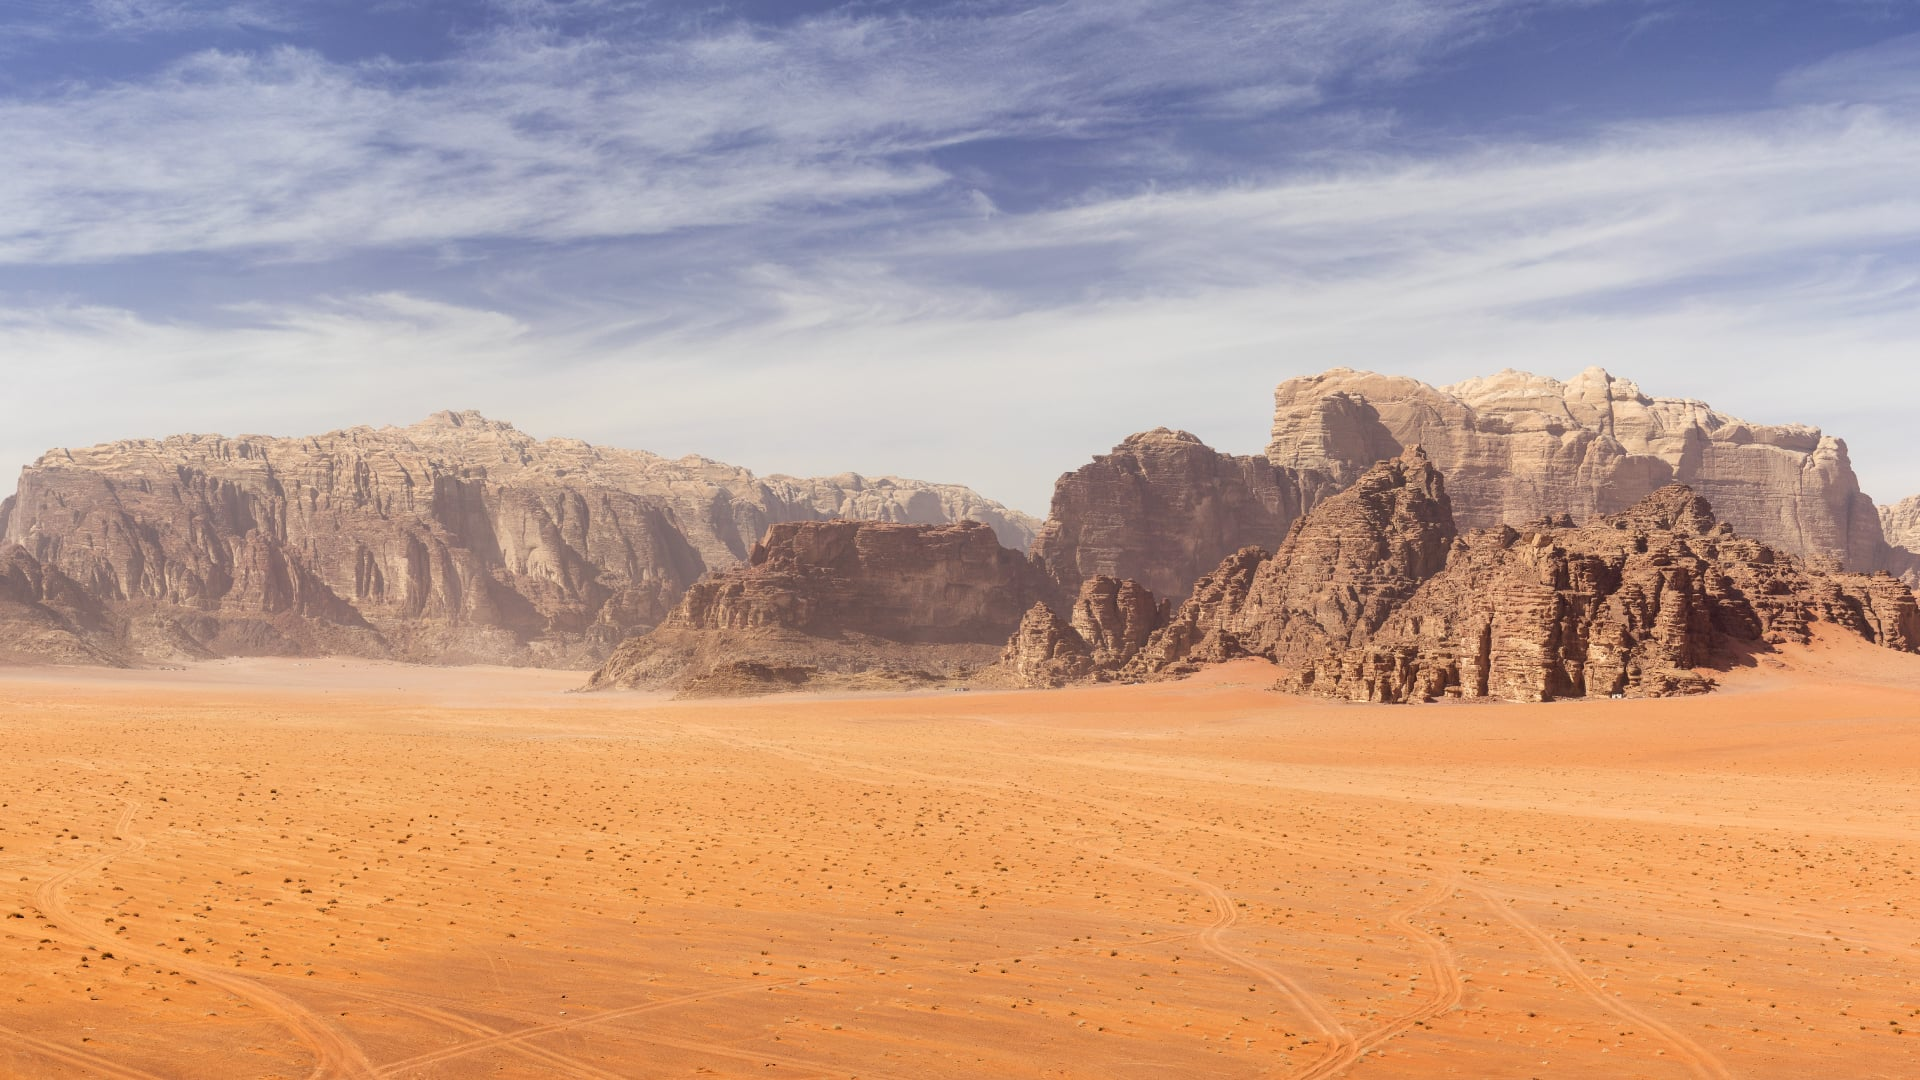 Atlas Service - Getting higher accuracy in remote areas (like the Sahara) GPS GIS GNSS receivers